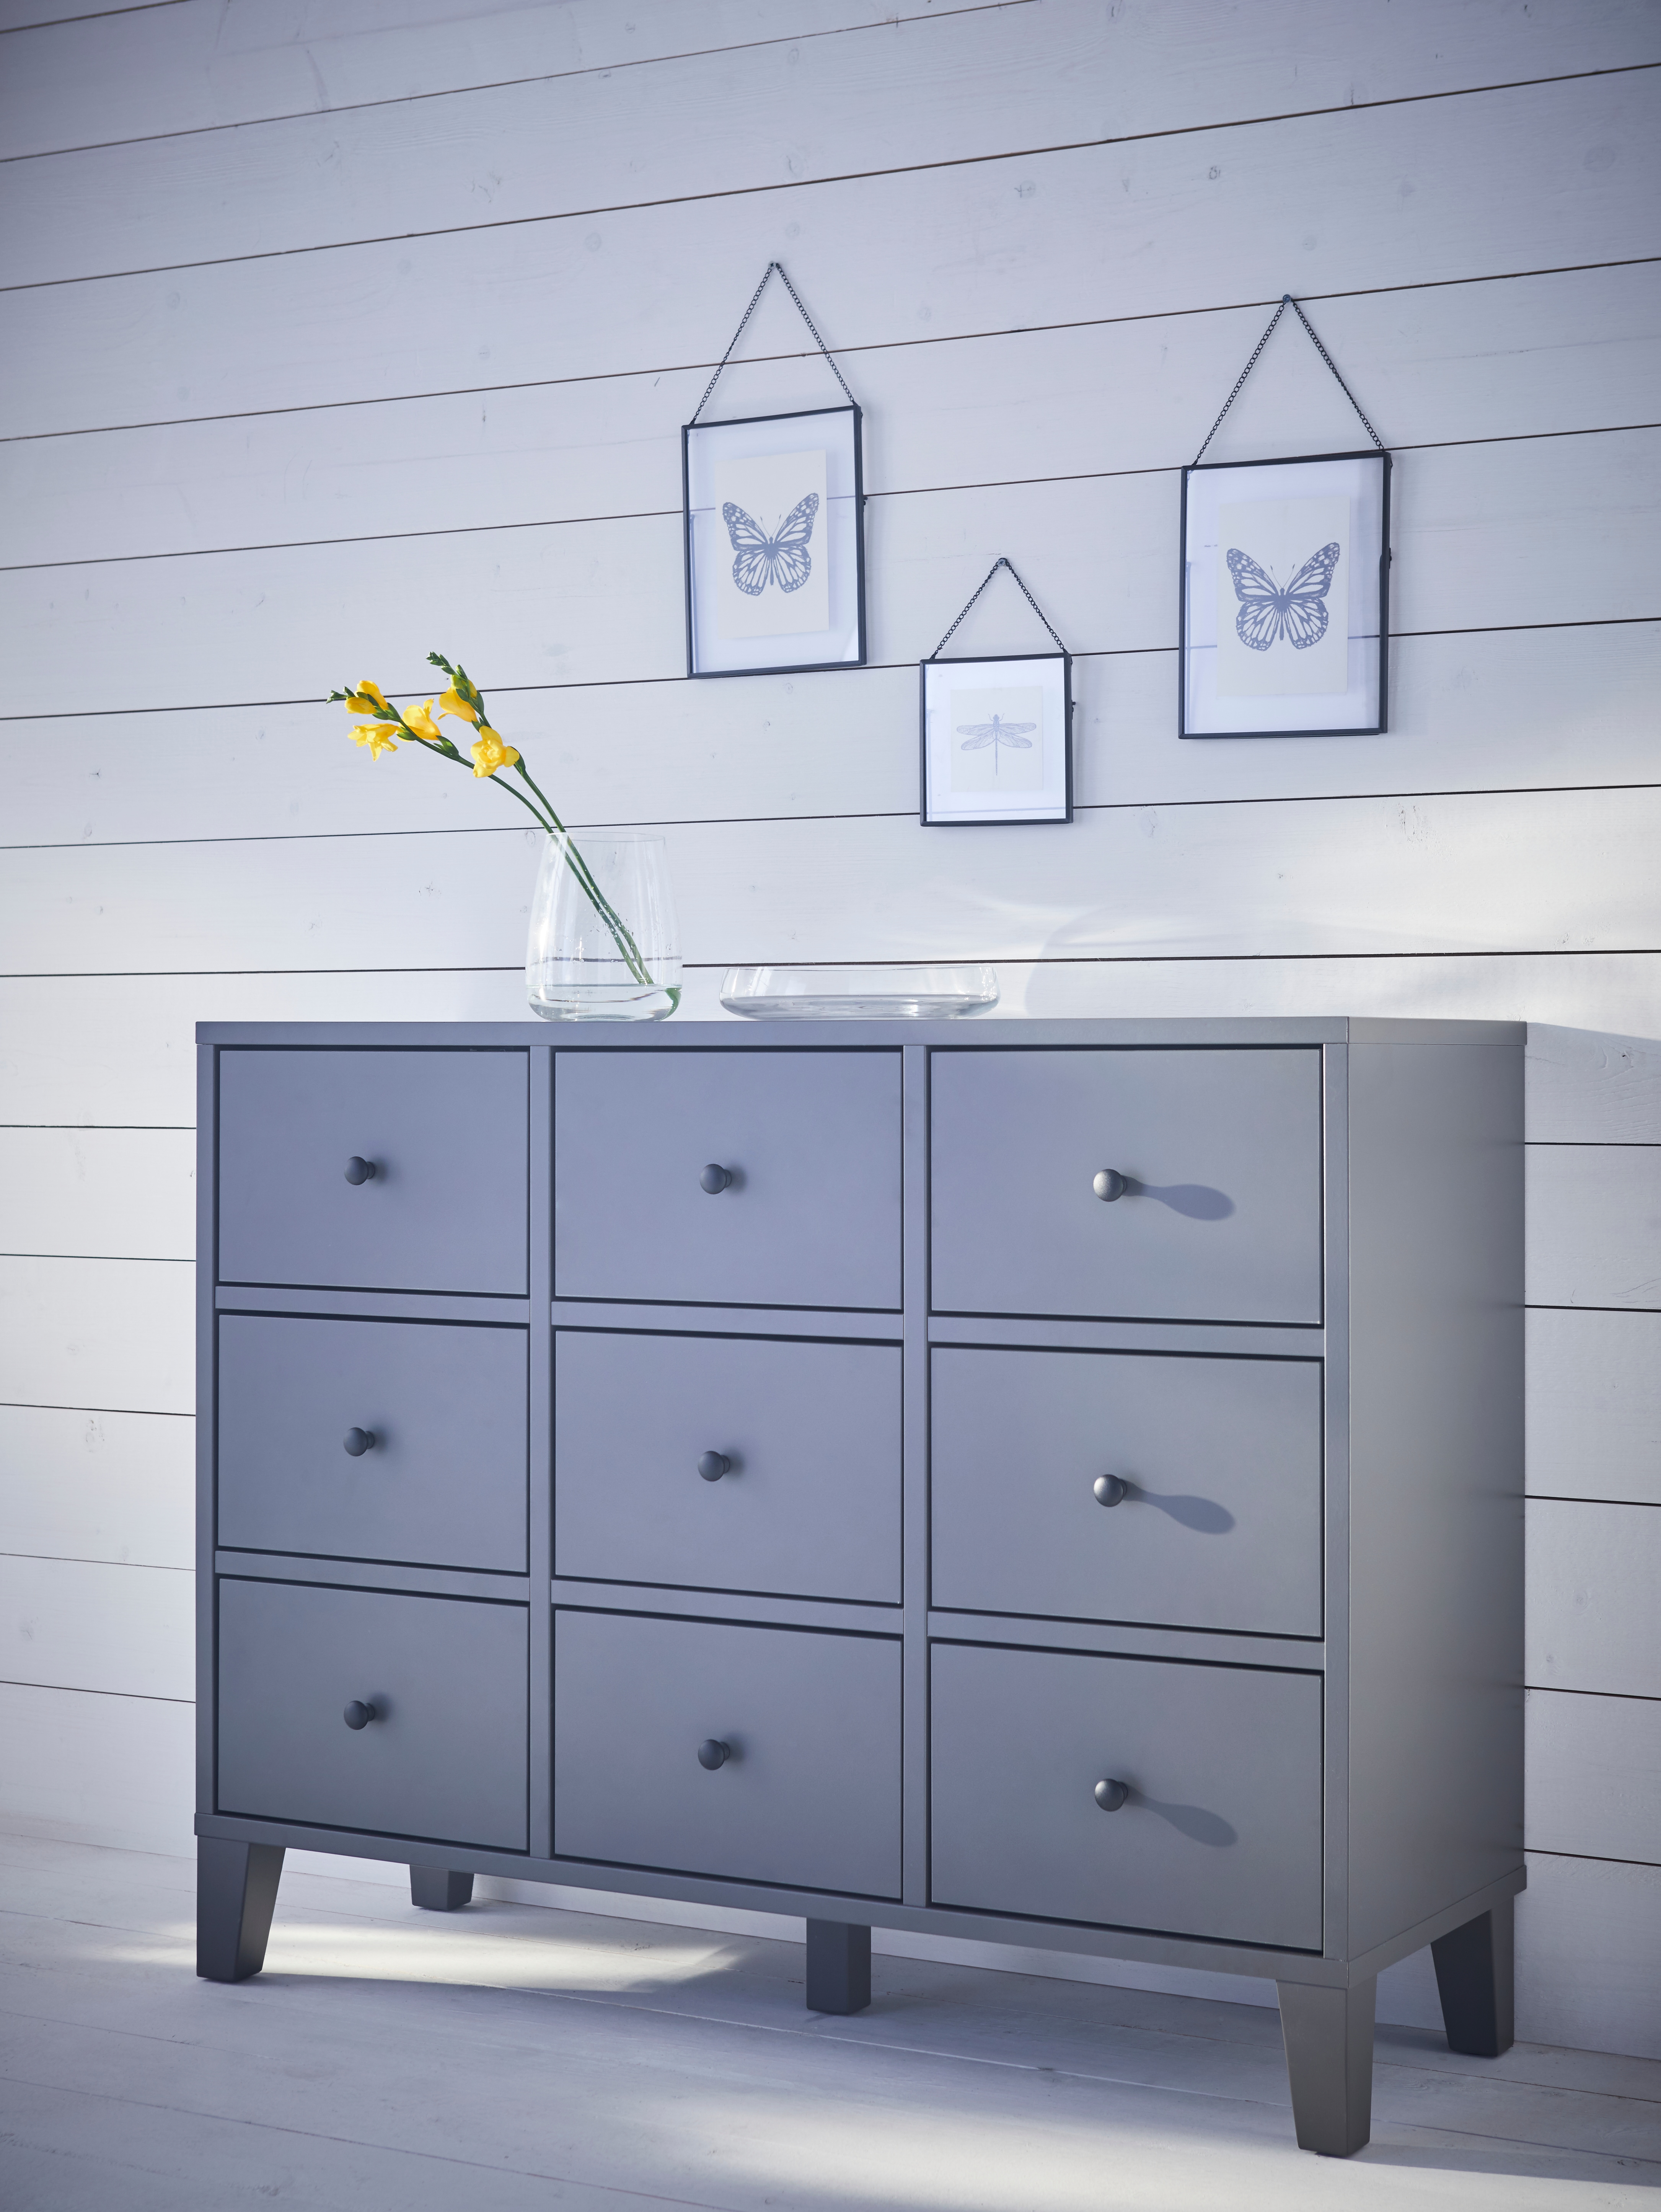 A dark grey BRYGGJA chest of nine drawers is against a plank wall. A glass bowl and yellow flower in glass vase sit on top.